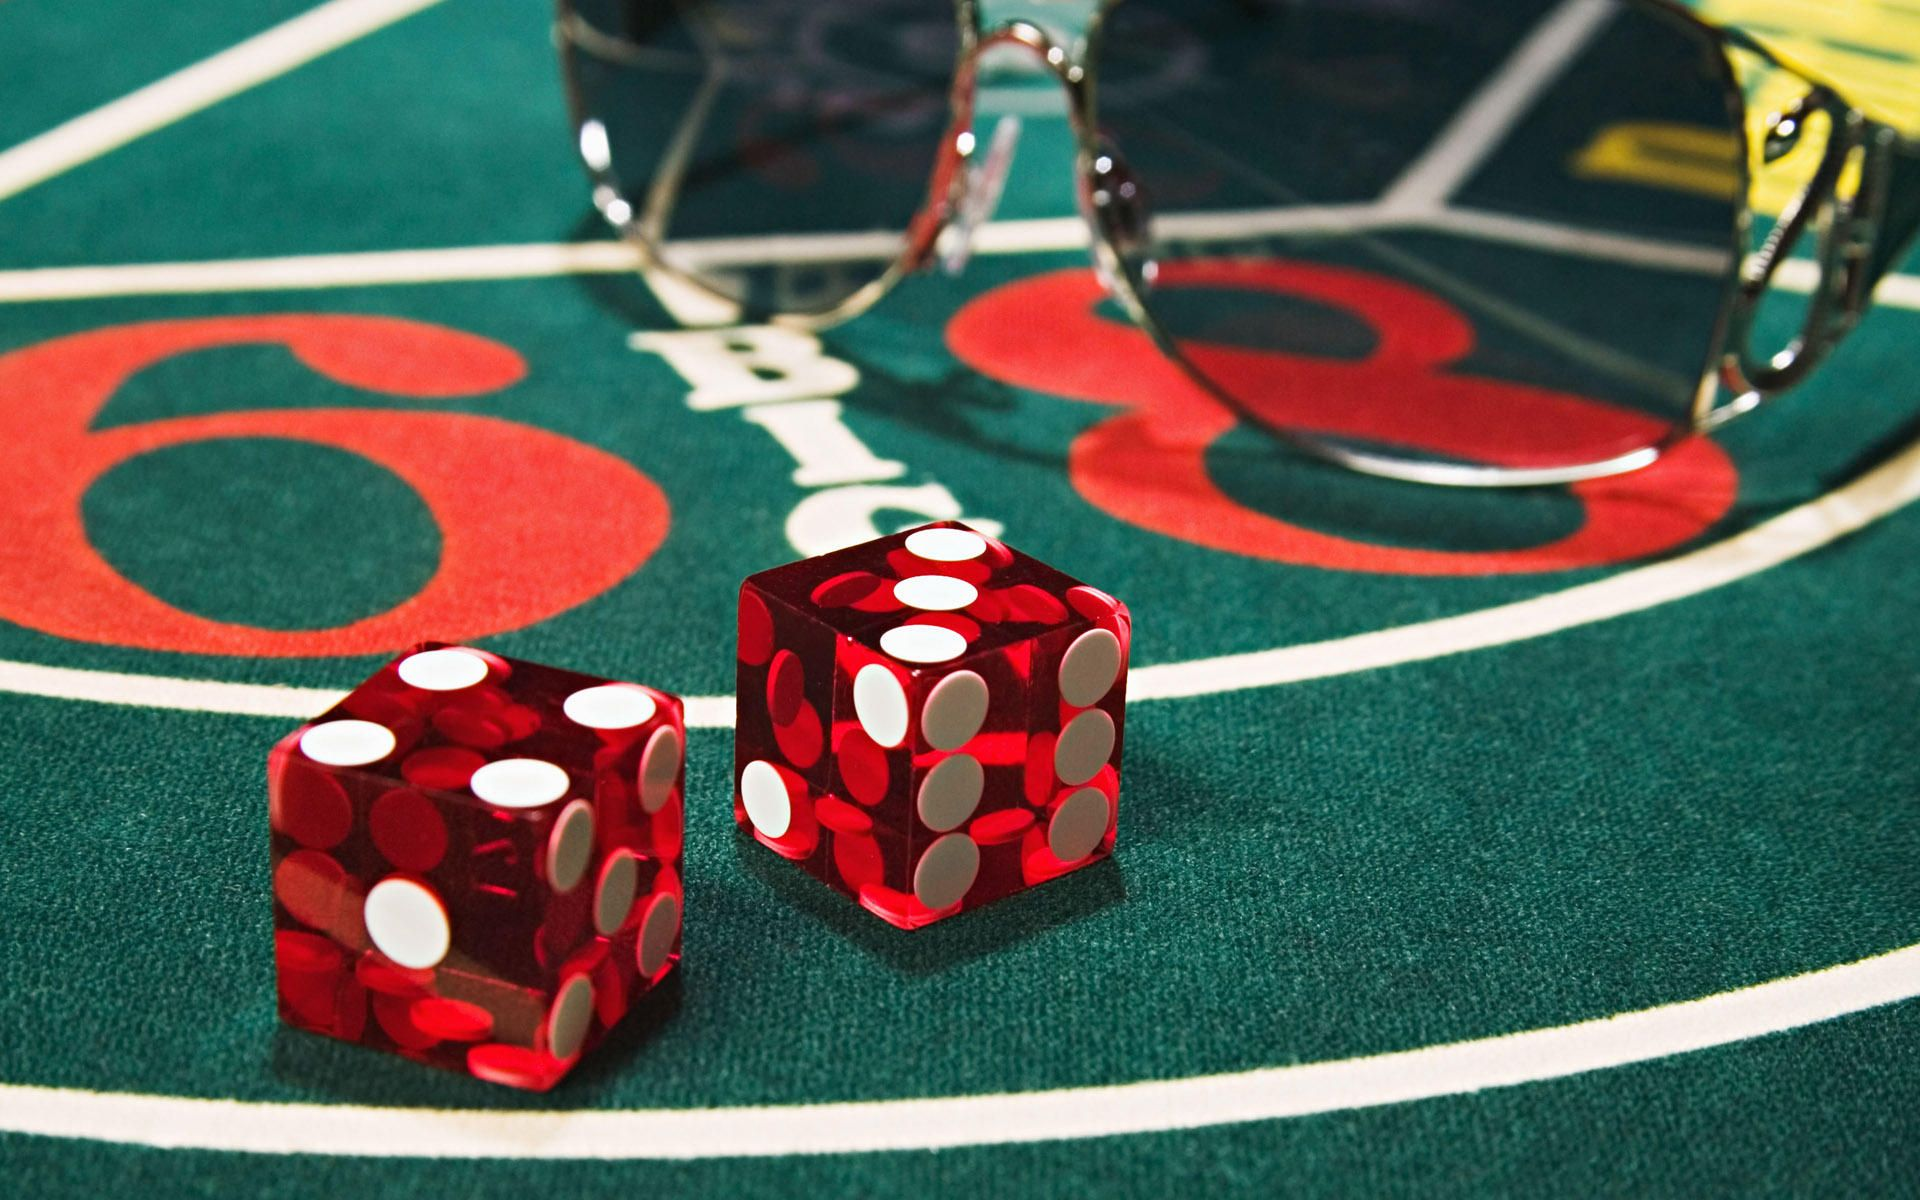 In this Online Gambling Site (Situs Judi Online) users find all the comforts to play